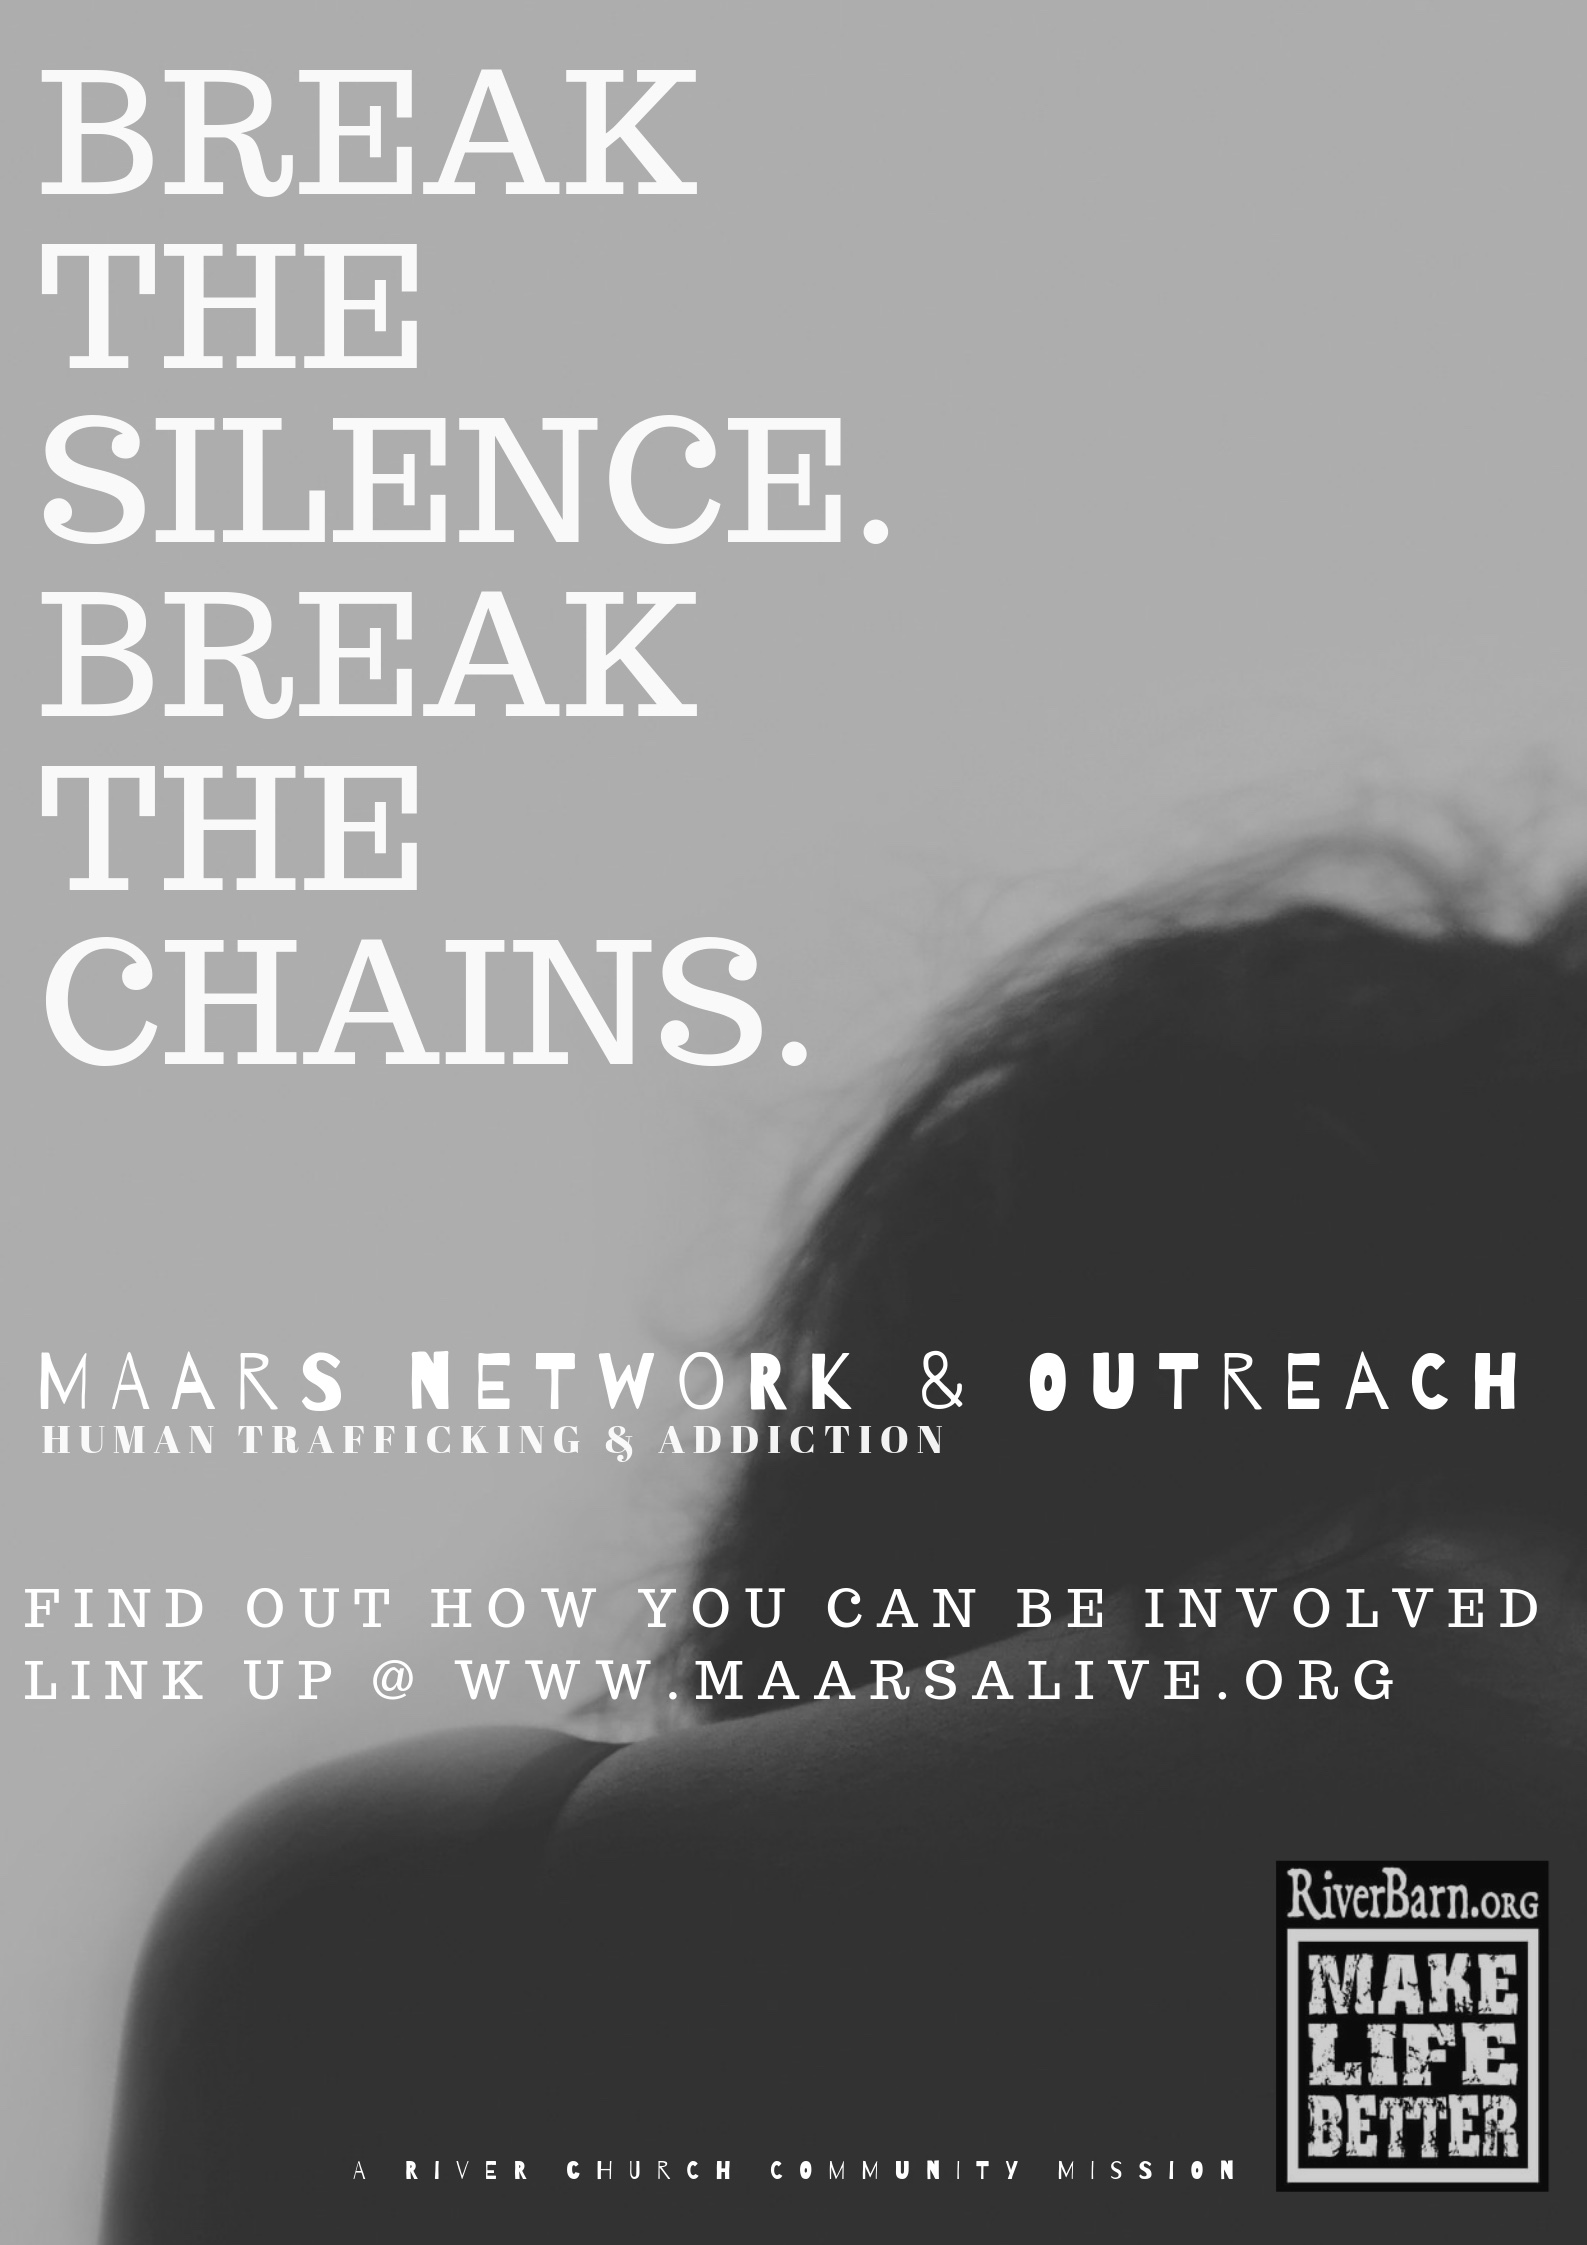 Break the Silence. Break the Chains.